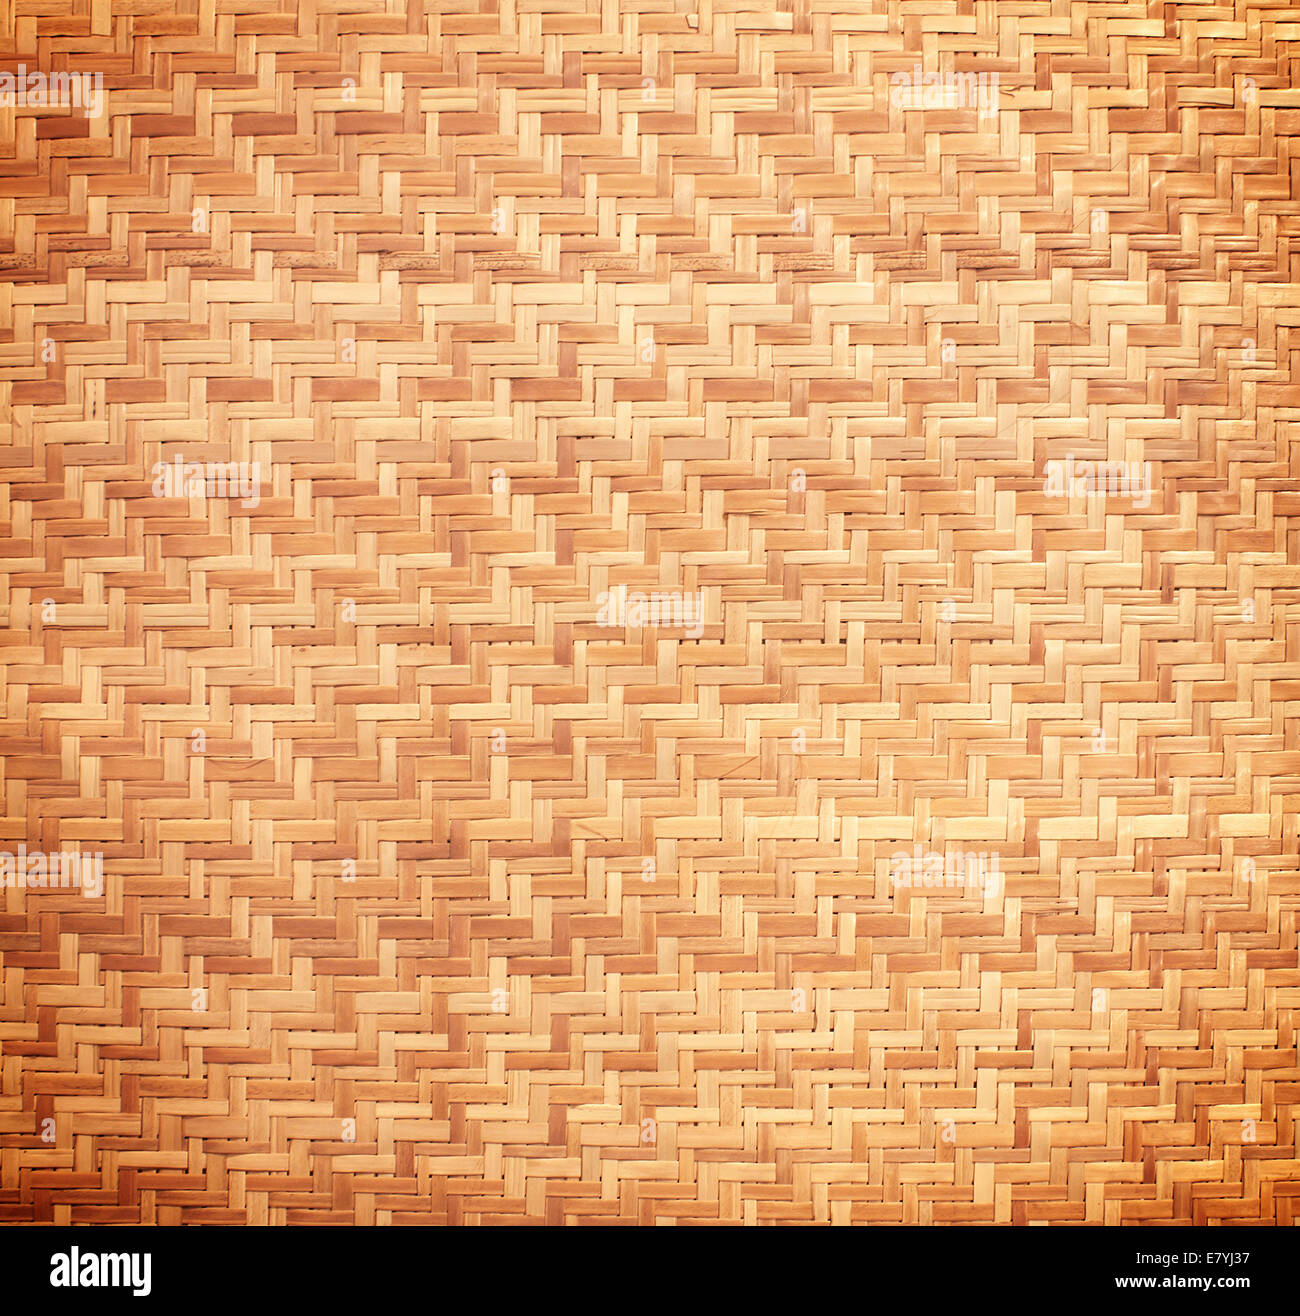 Woven rattan with natural patterns, vintage wall. - Stock Image